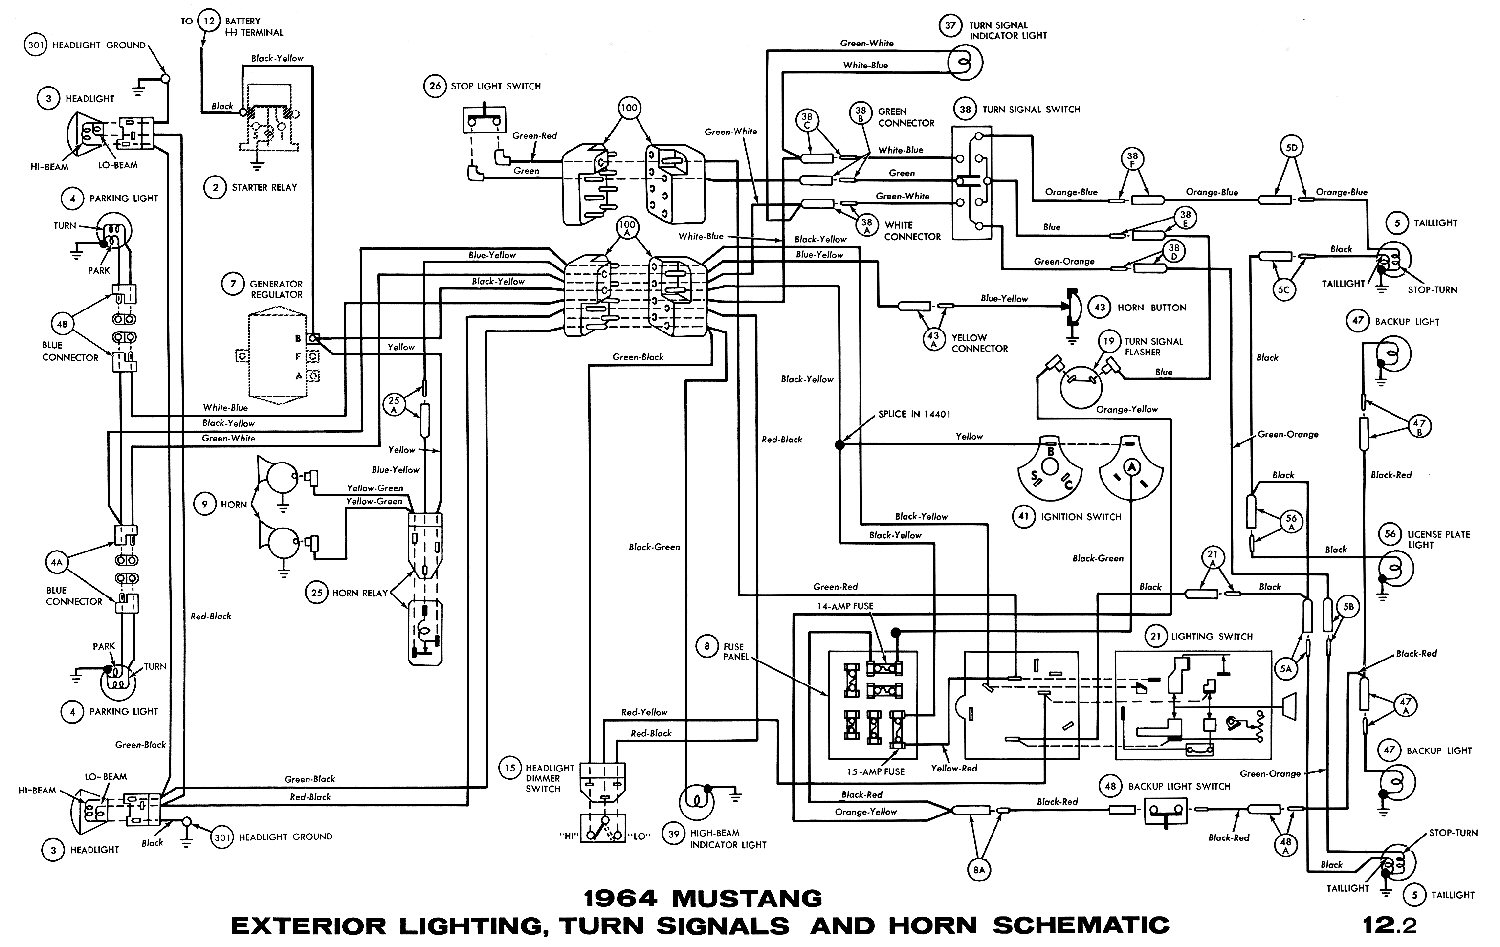 1964i wiring diagram for 1971 mustang readingrat net wiring diagram for 69 mustang at gsmportal.co